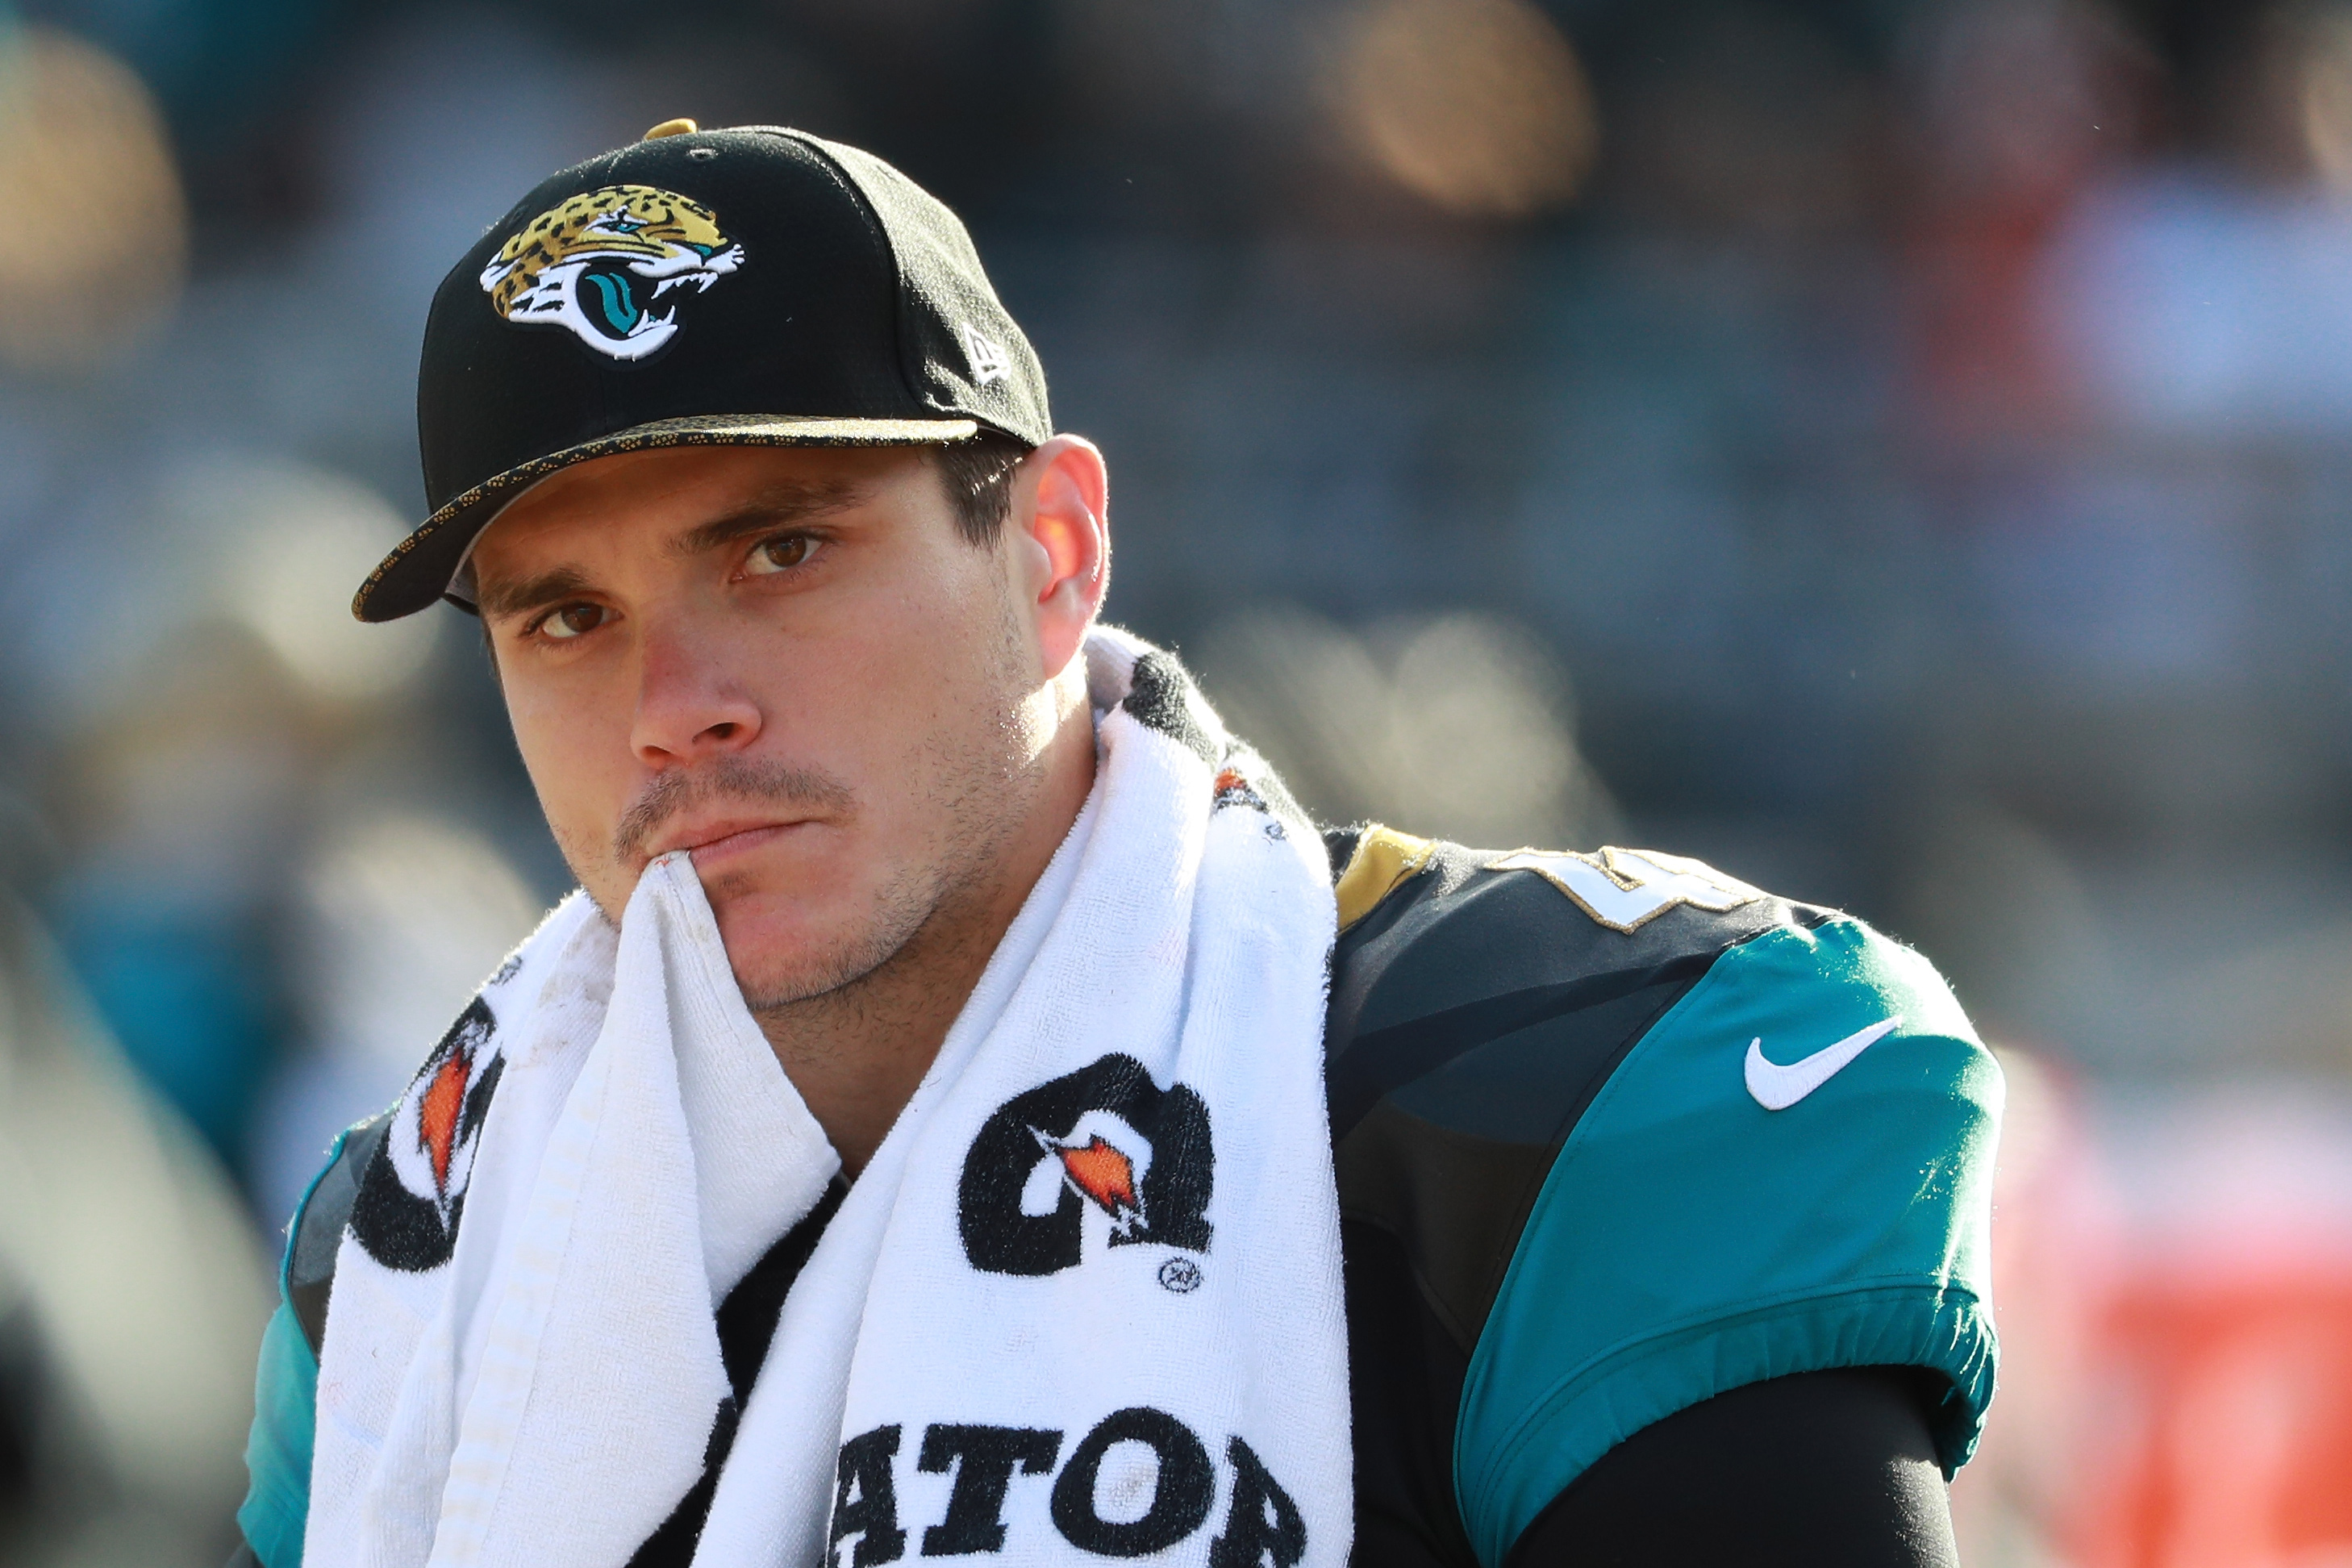 Jacksonville Jaguars kicker Lambo says a career in the NFL will be 'difficult' despite Kane's obvious talent